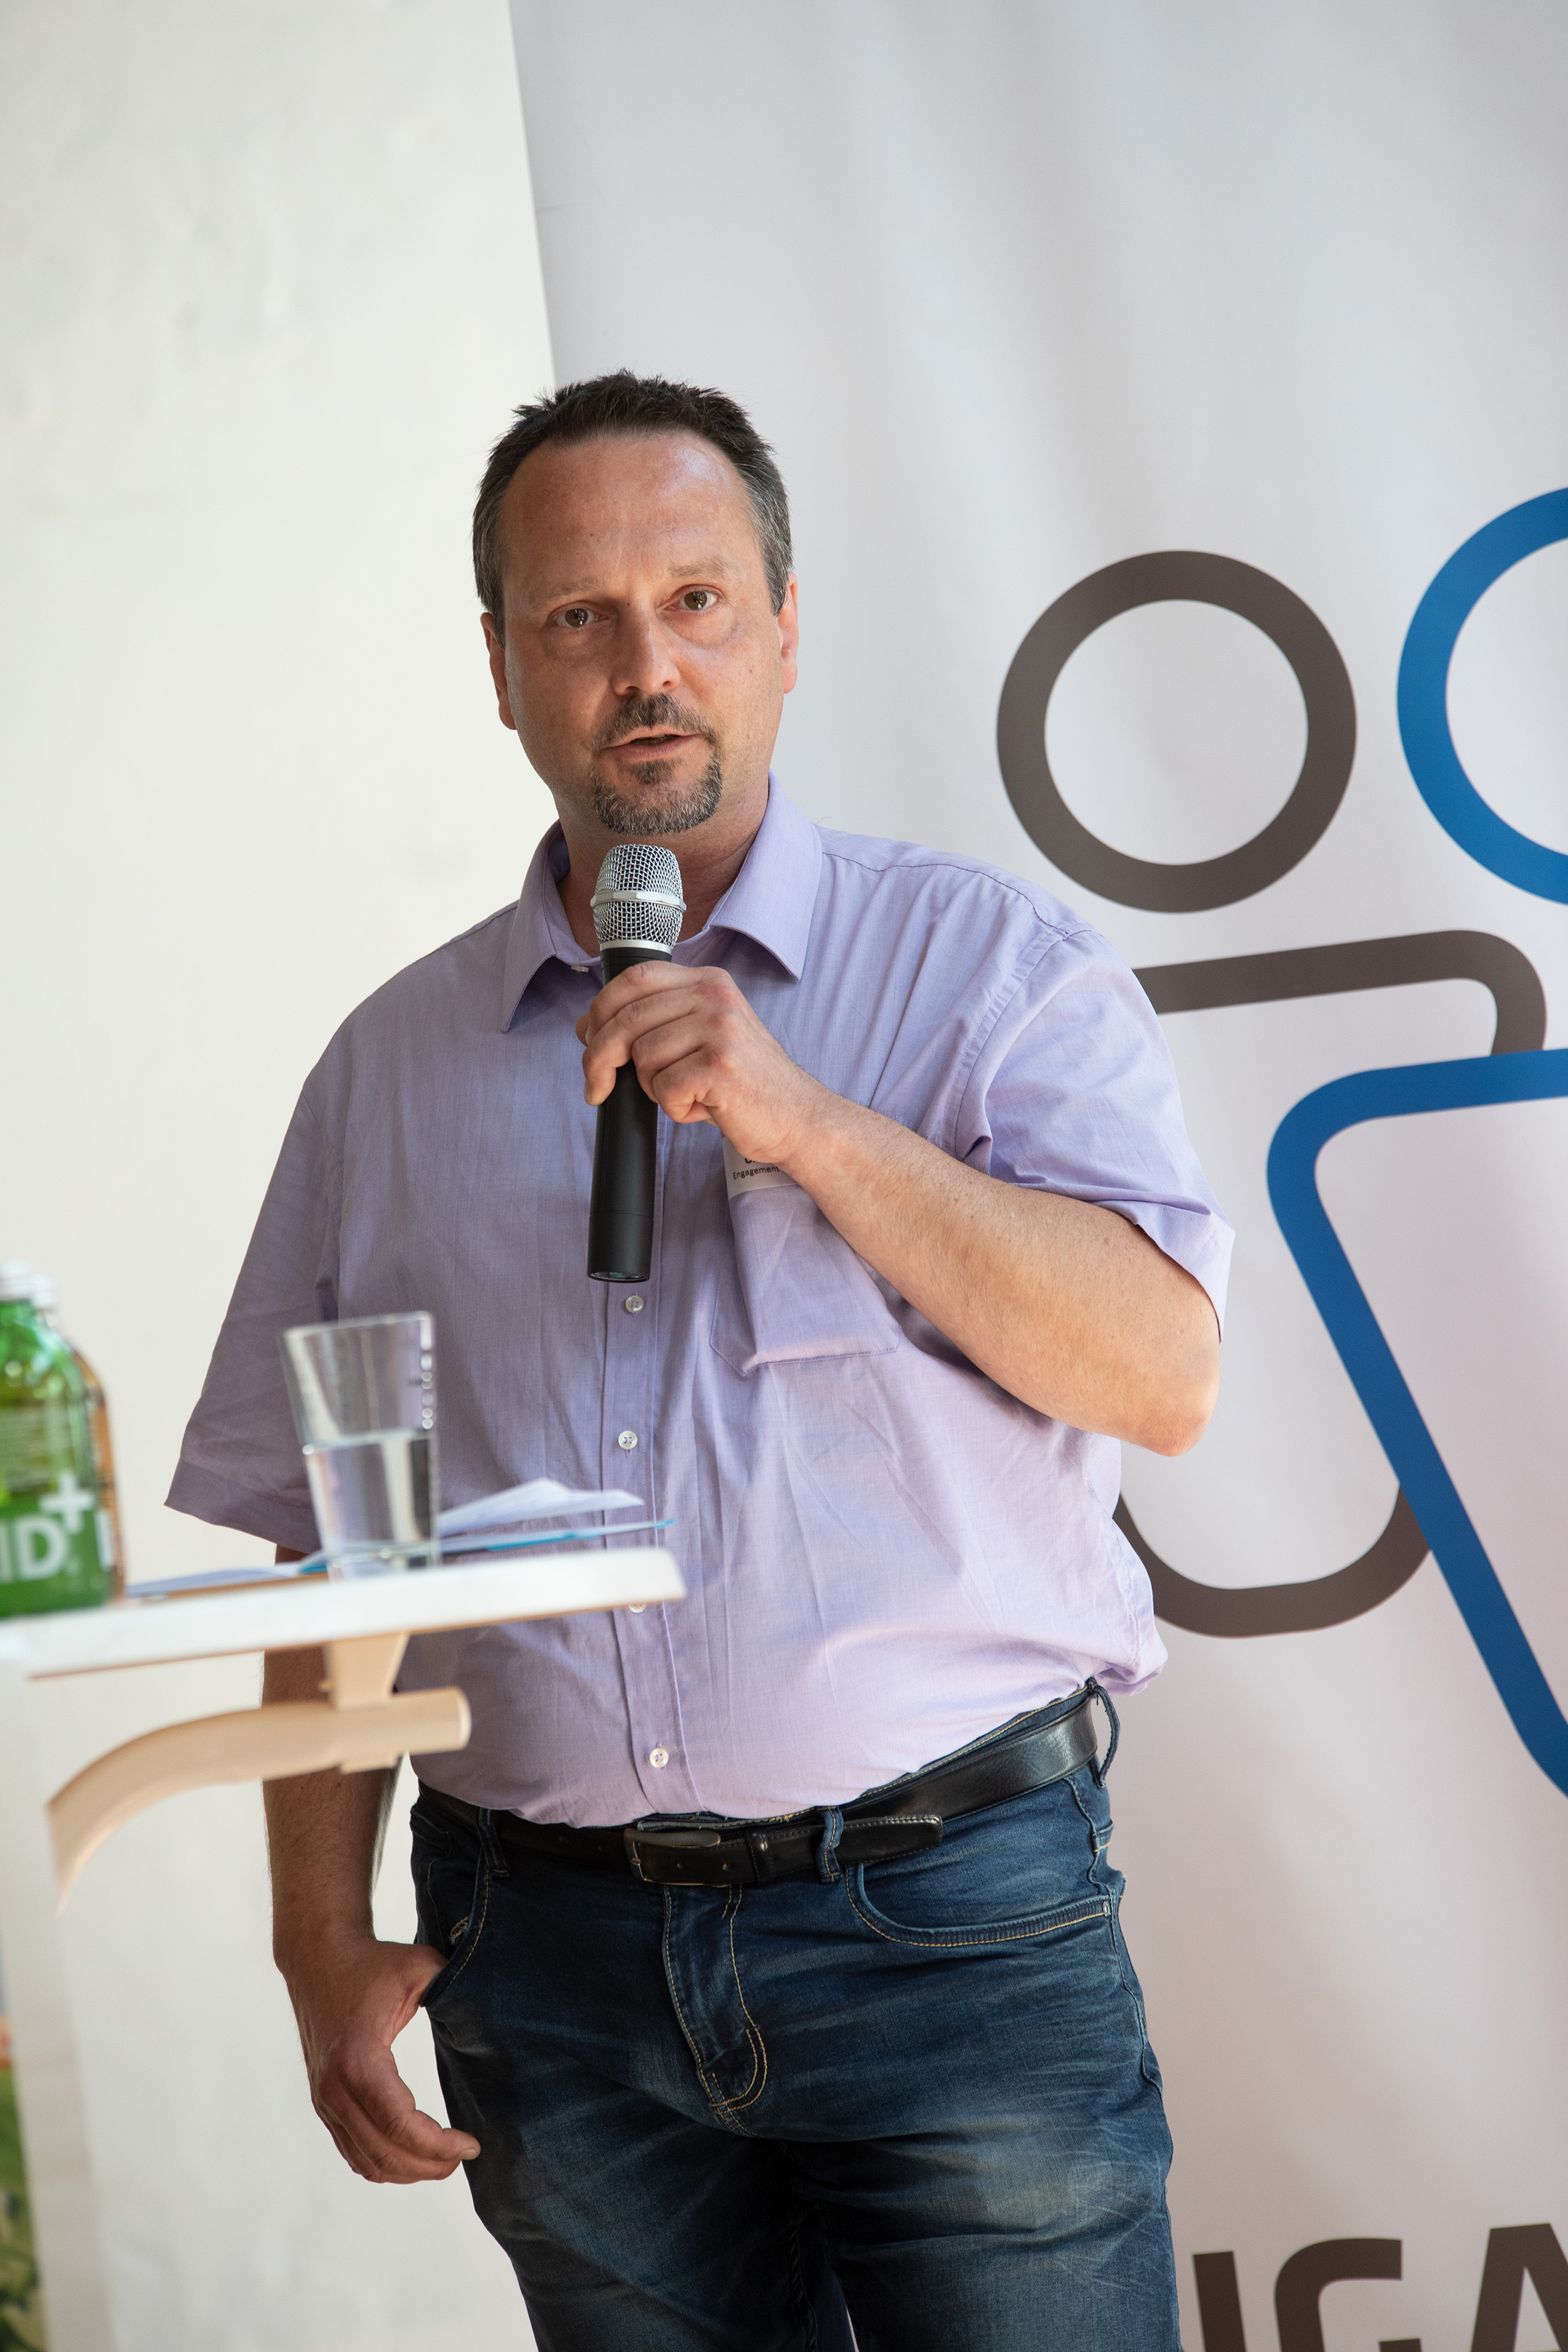 Olaf Lenz (Engagement Global)